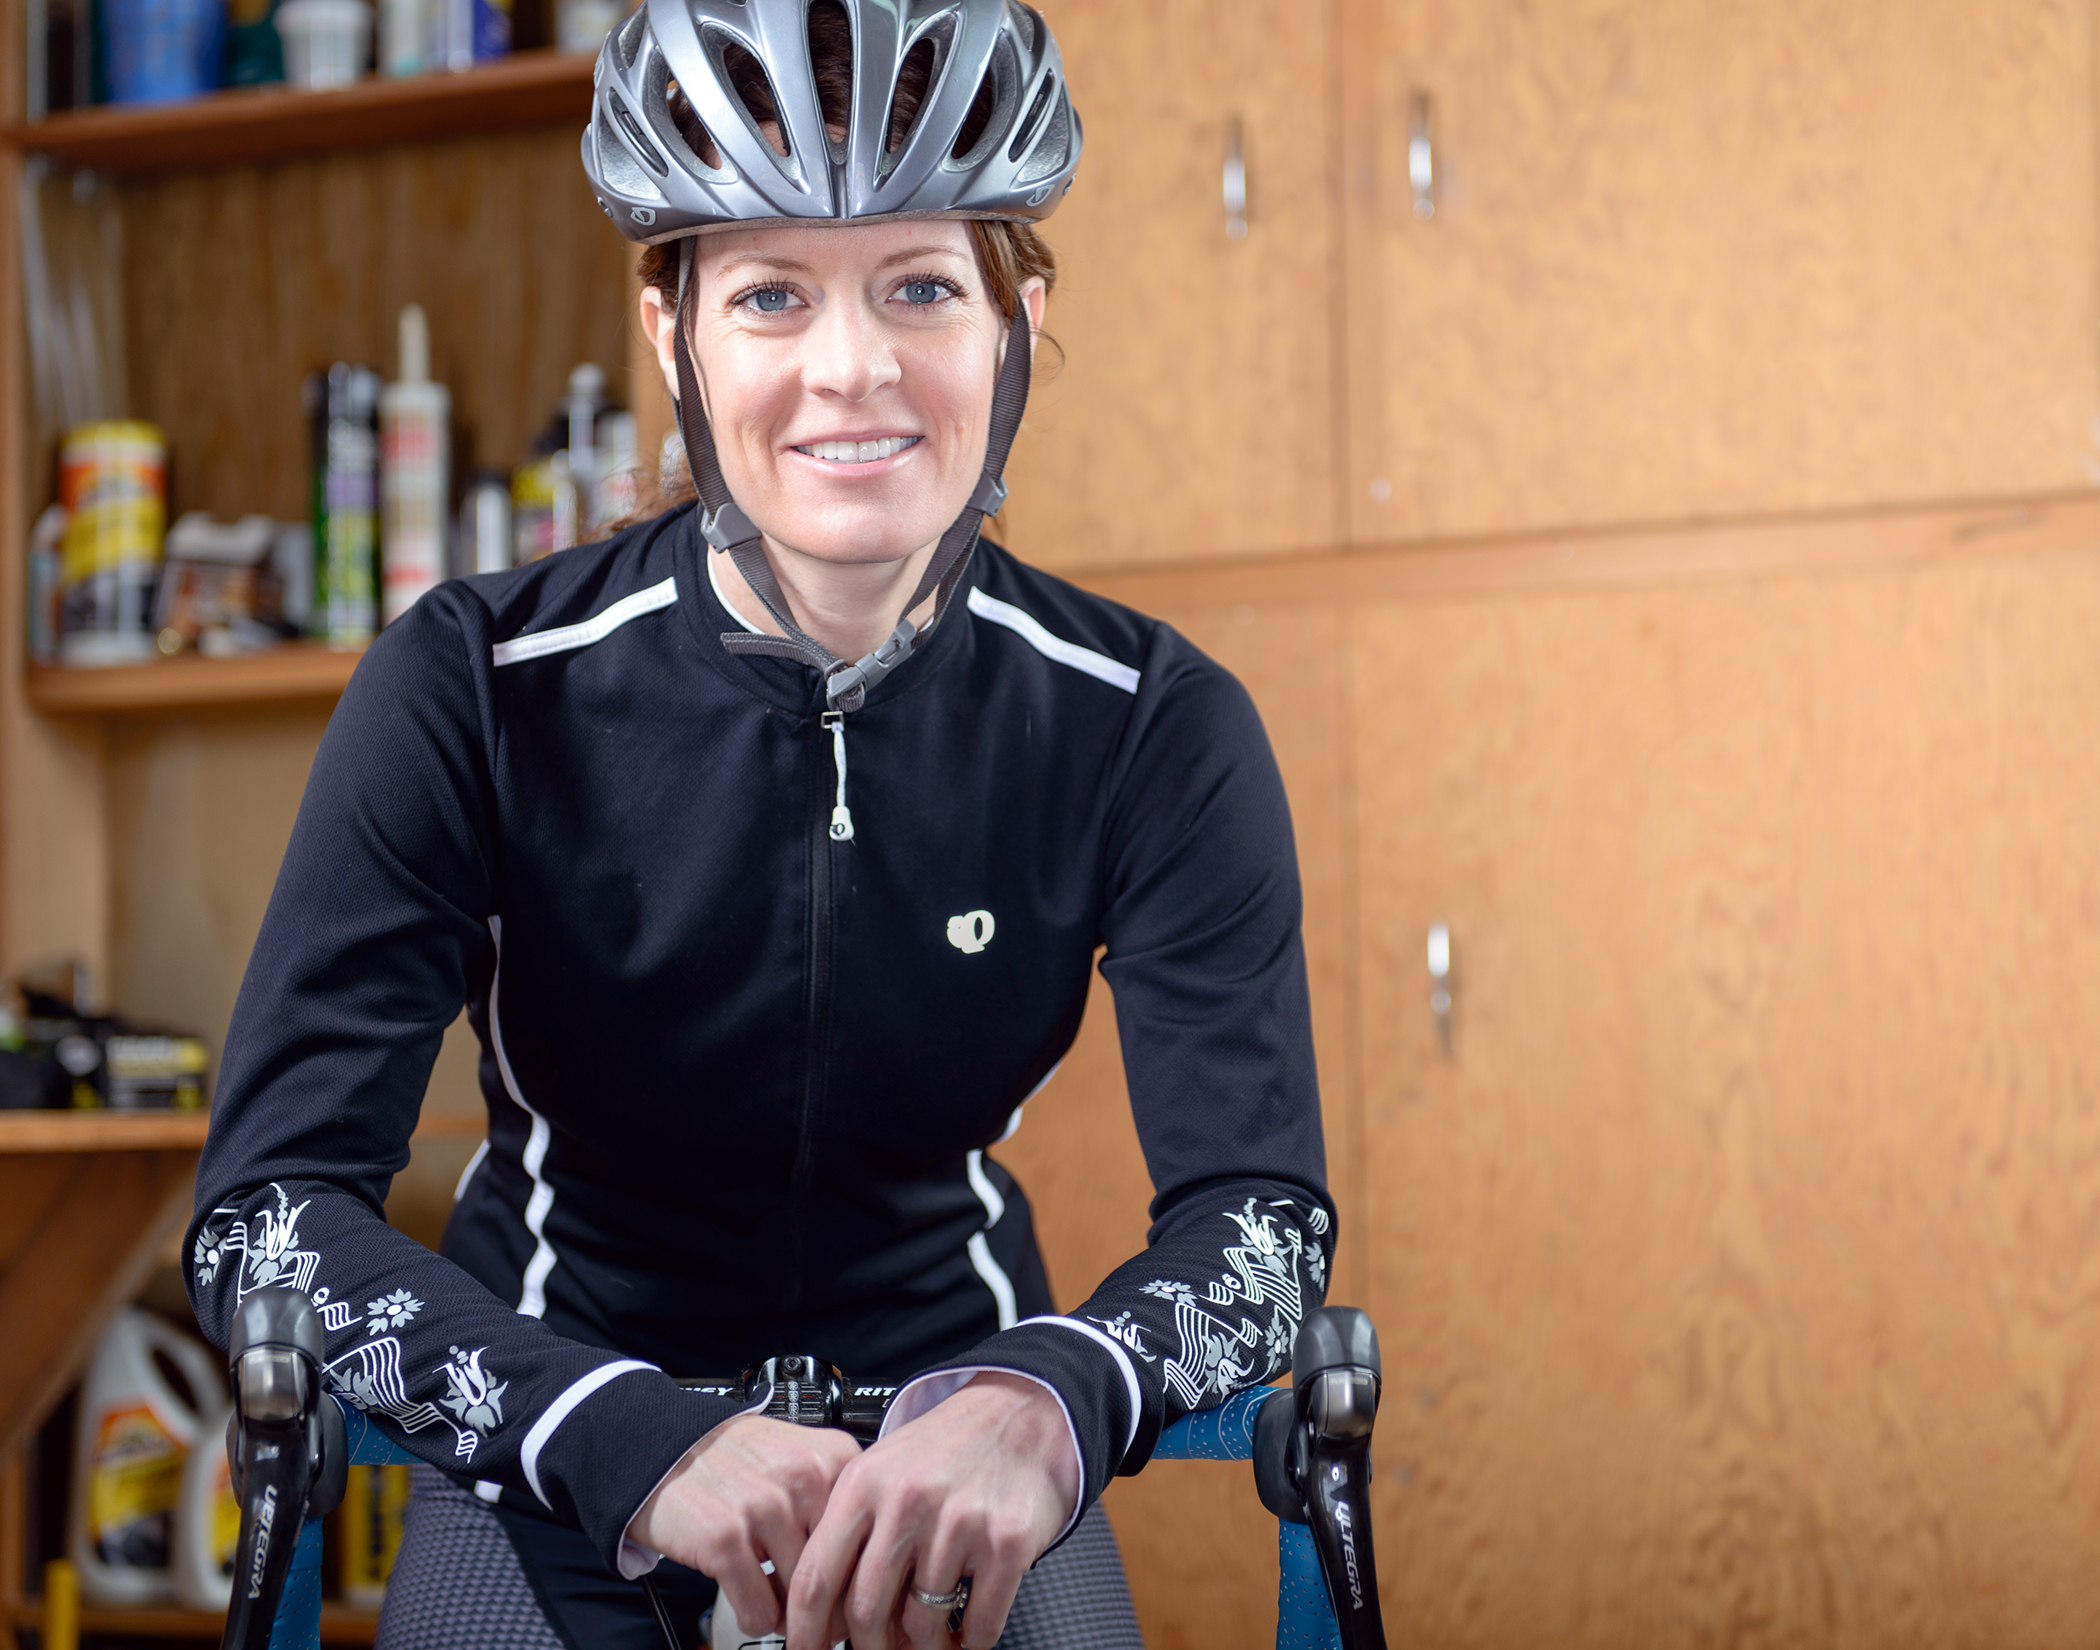 Renee and her Ridley for the My Favorite Bike Portrait Series.